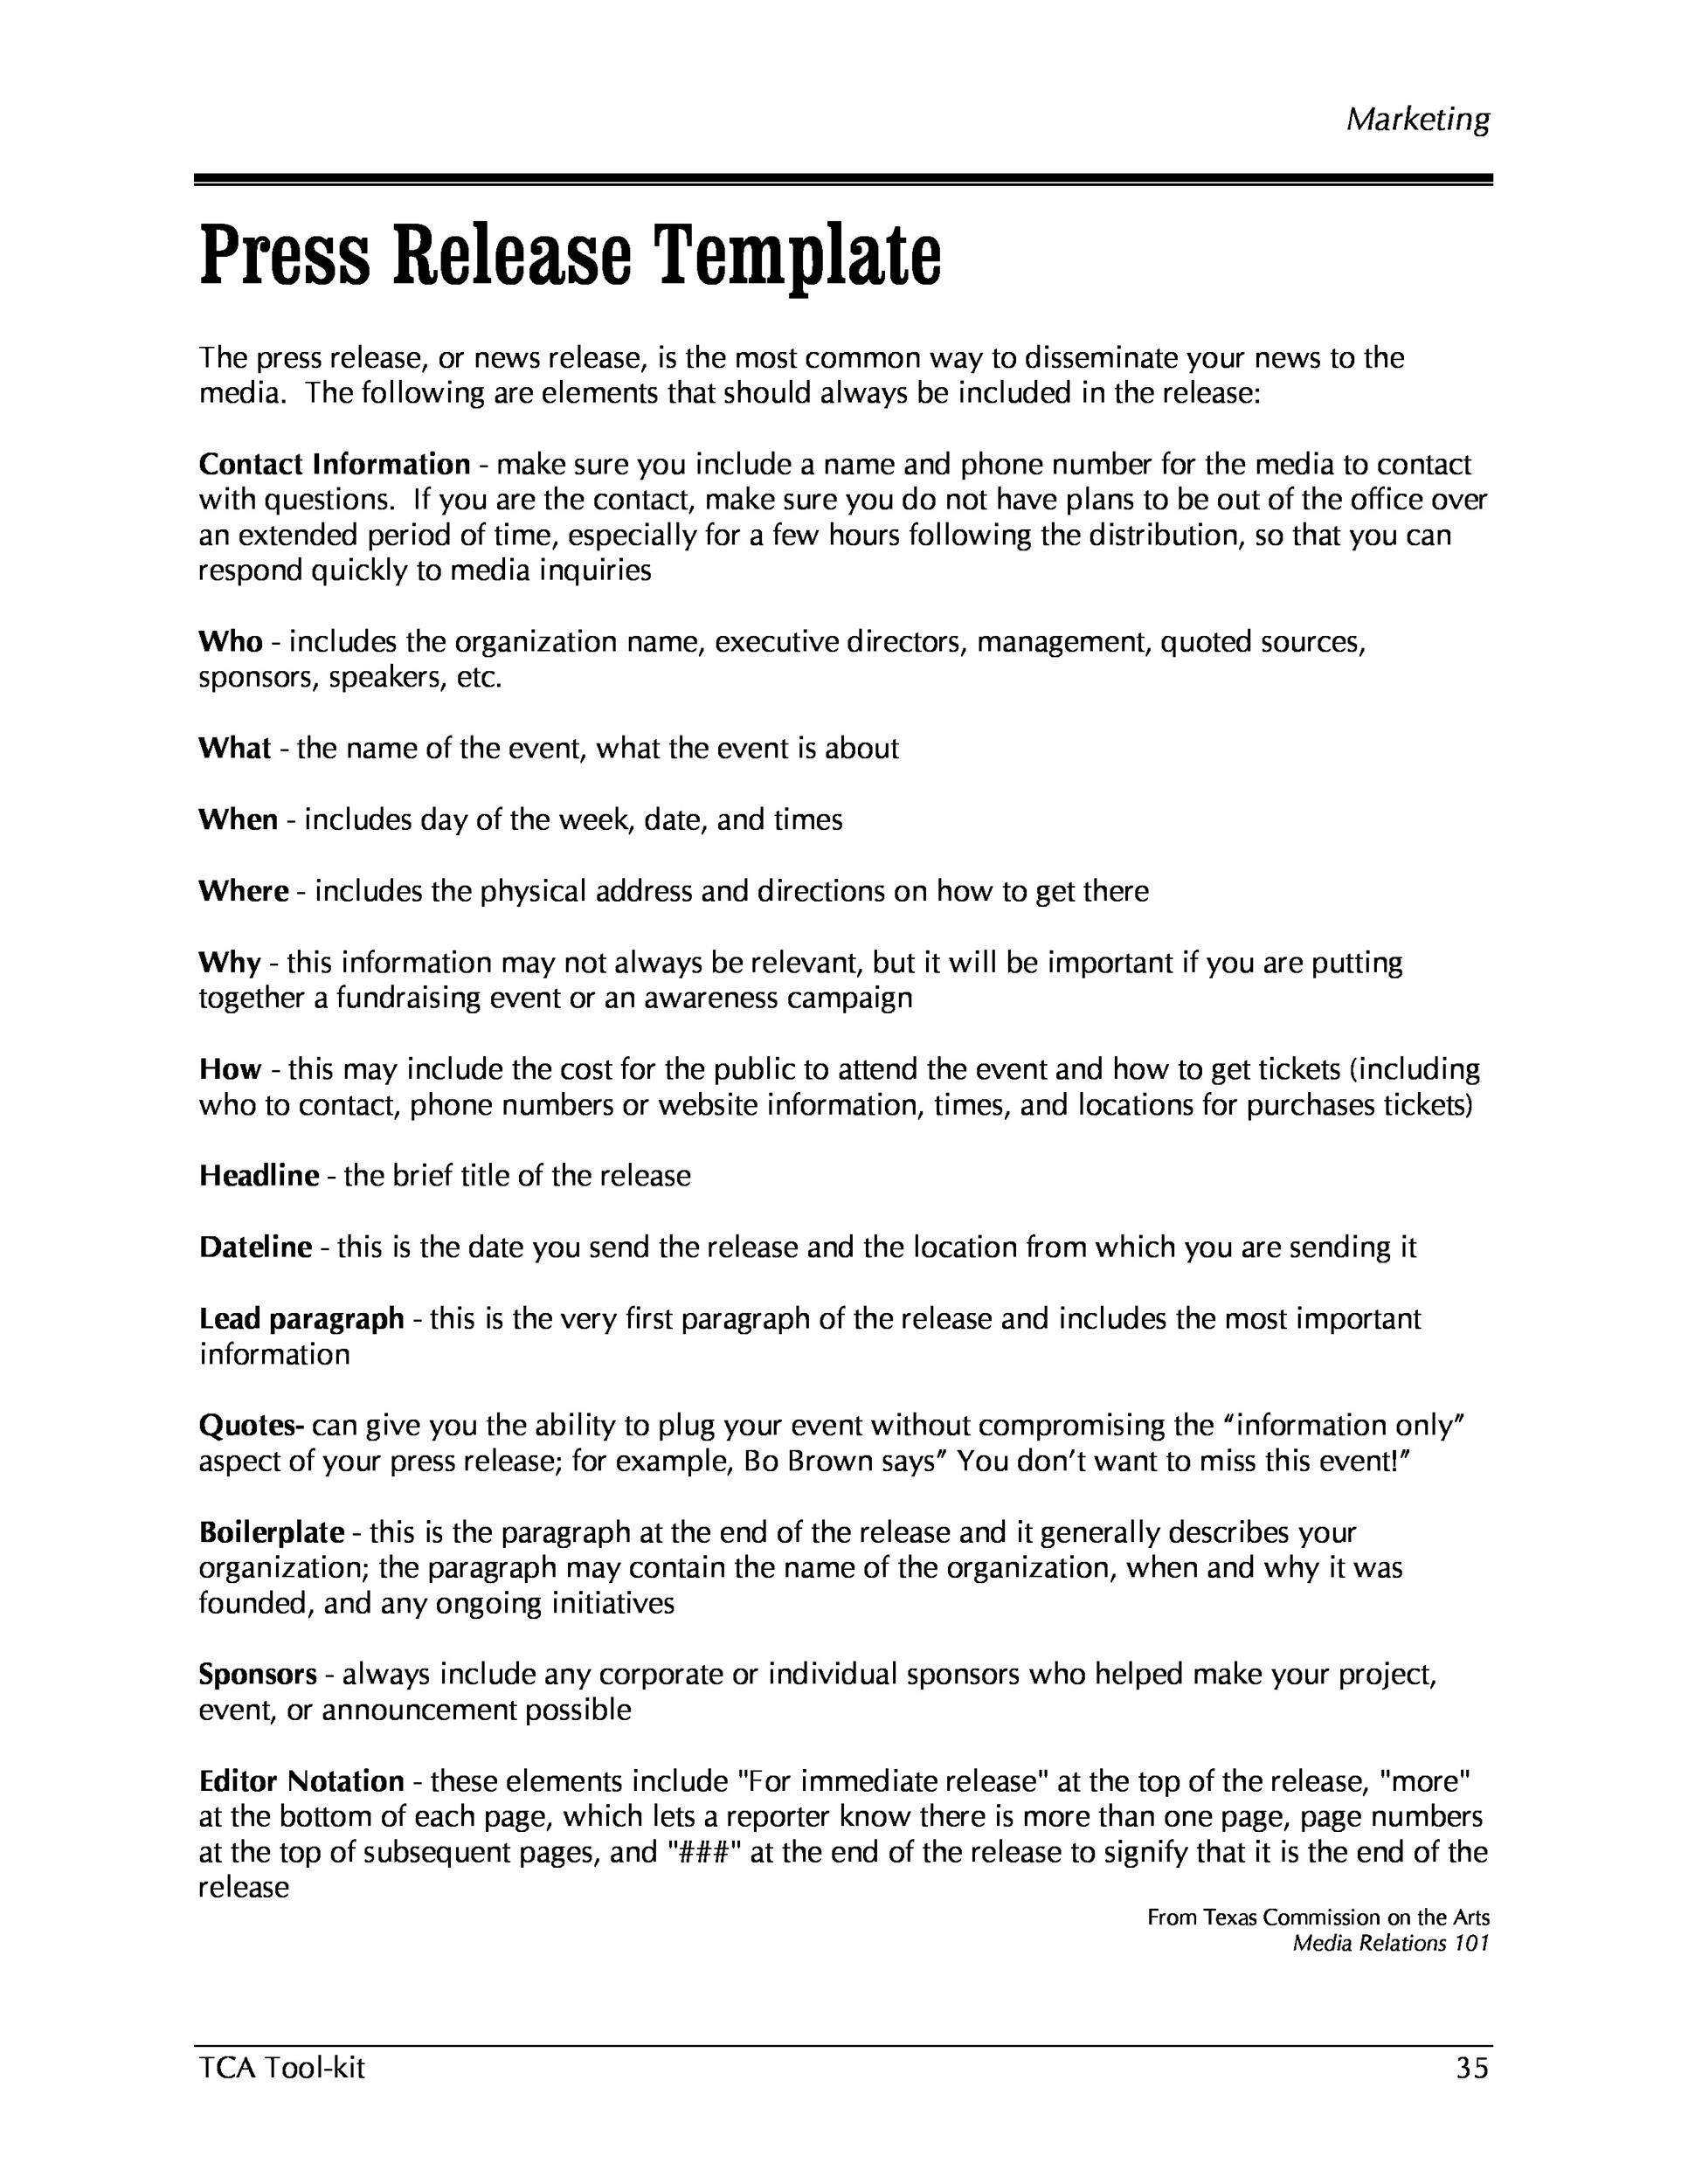 009 Impressive Free Pres Release Template Image  Templates Uk Sample DownloadFull